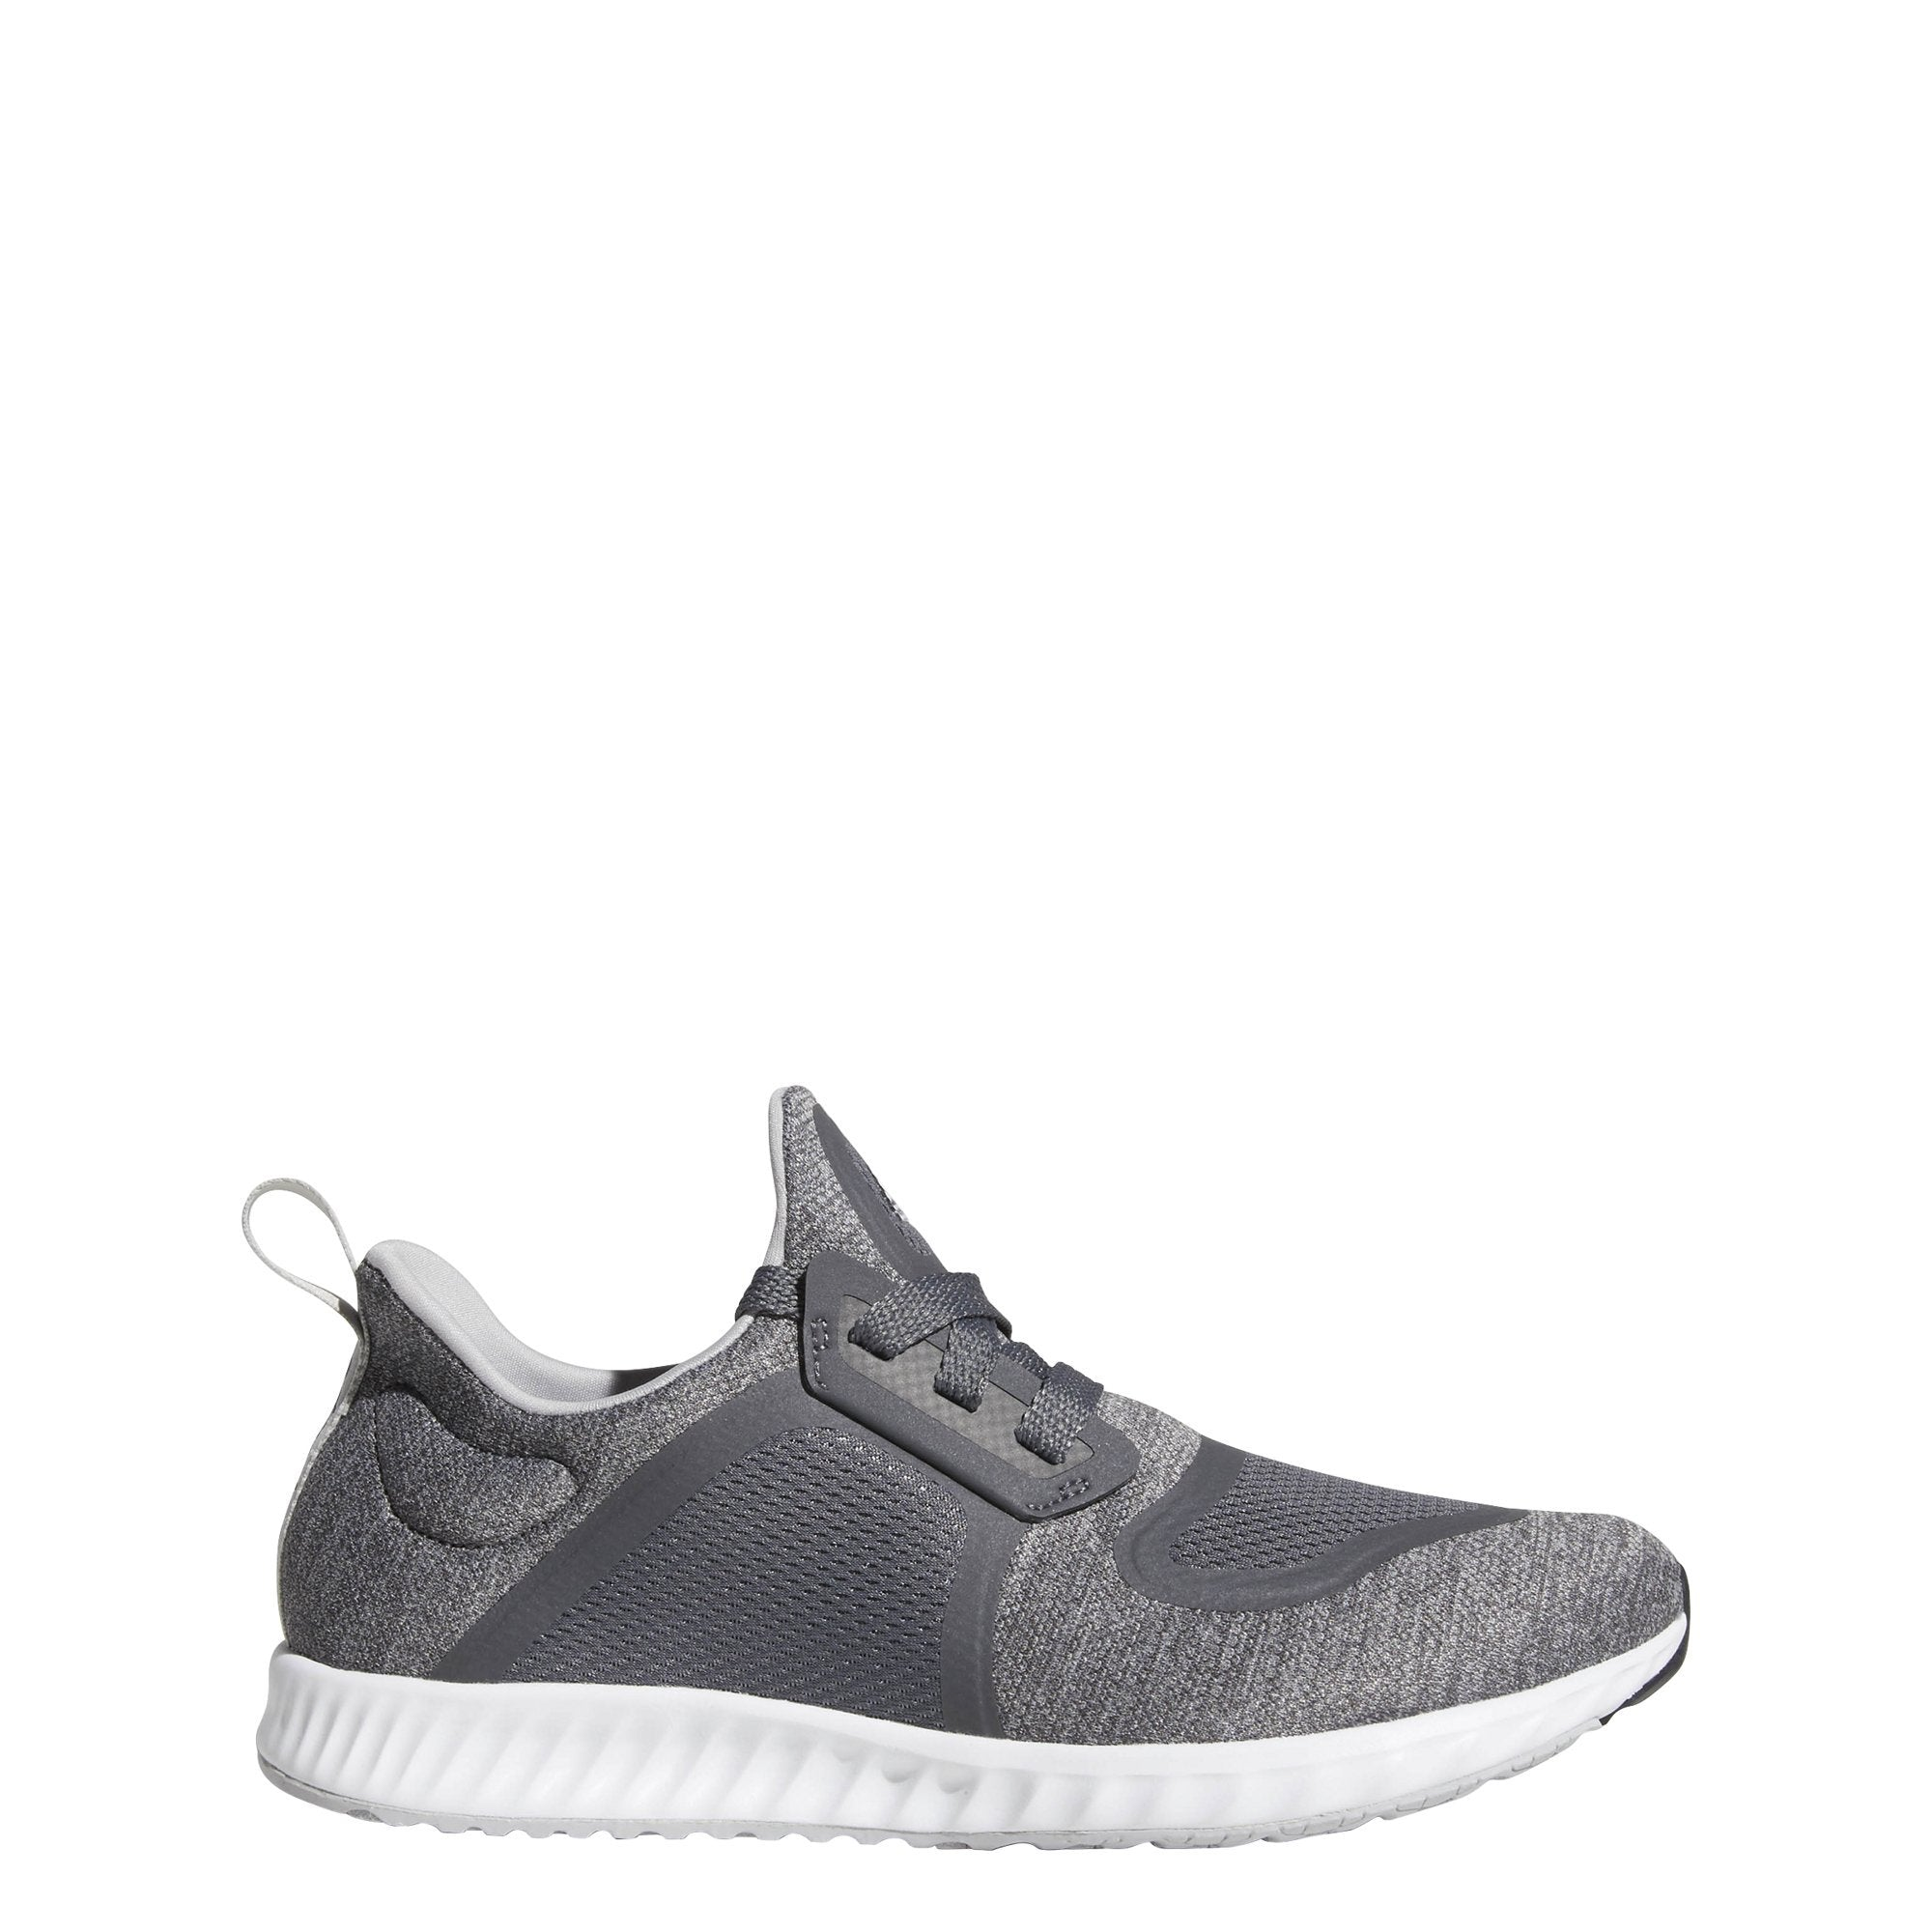 Adidas Women's Edge Lux Clima Shoes - Grey Two f17 / Grey Two f17 / ftwr White Footwear Adidas  (2012421619771)